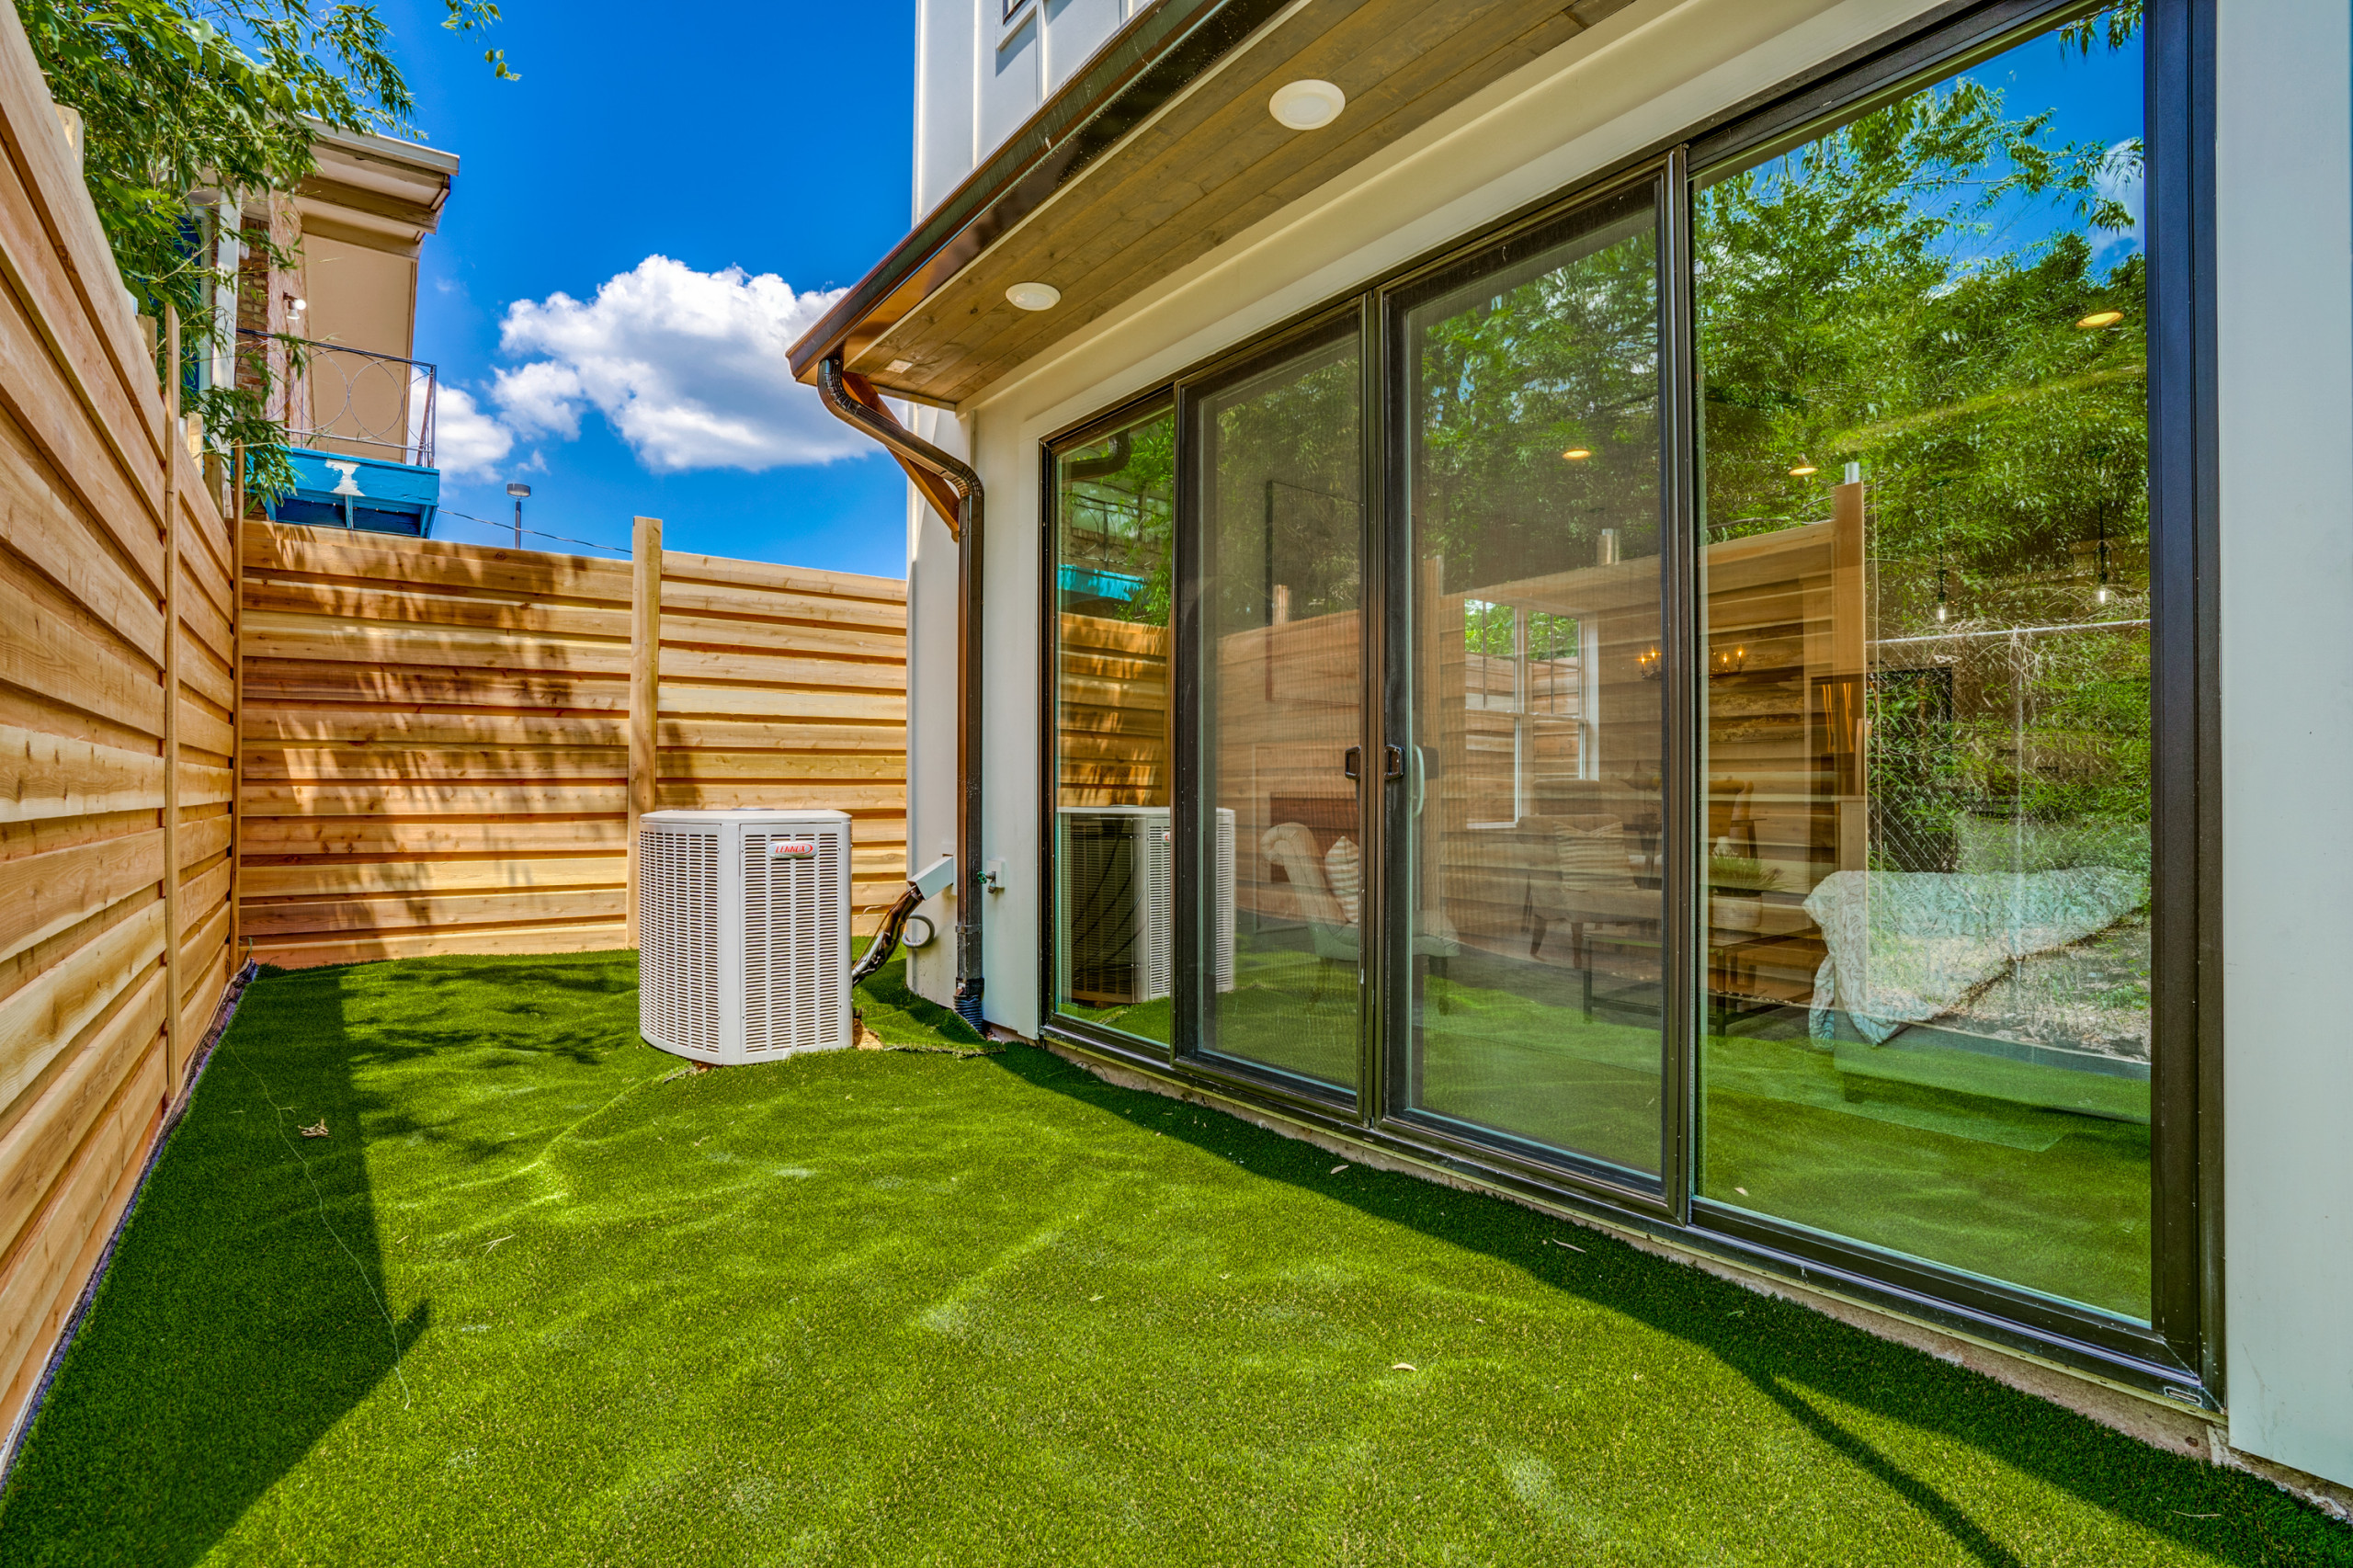 Open Side Yard with Horizontal Fencing